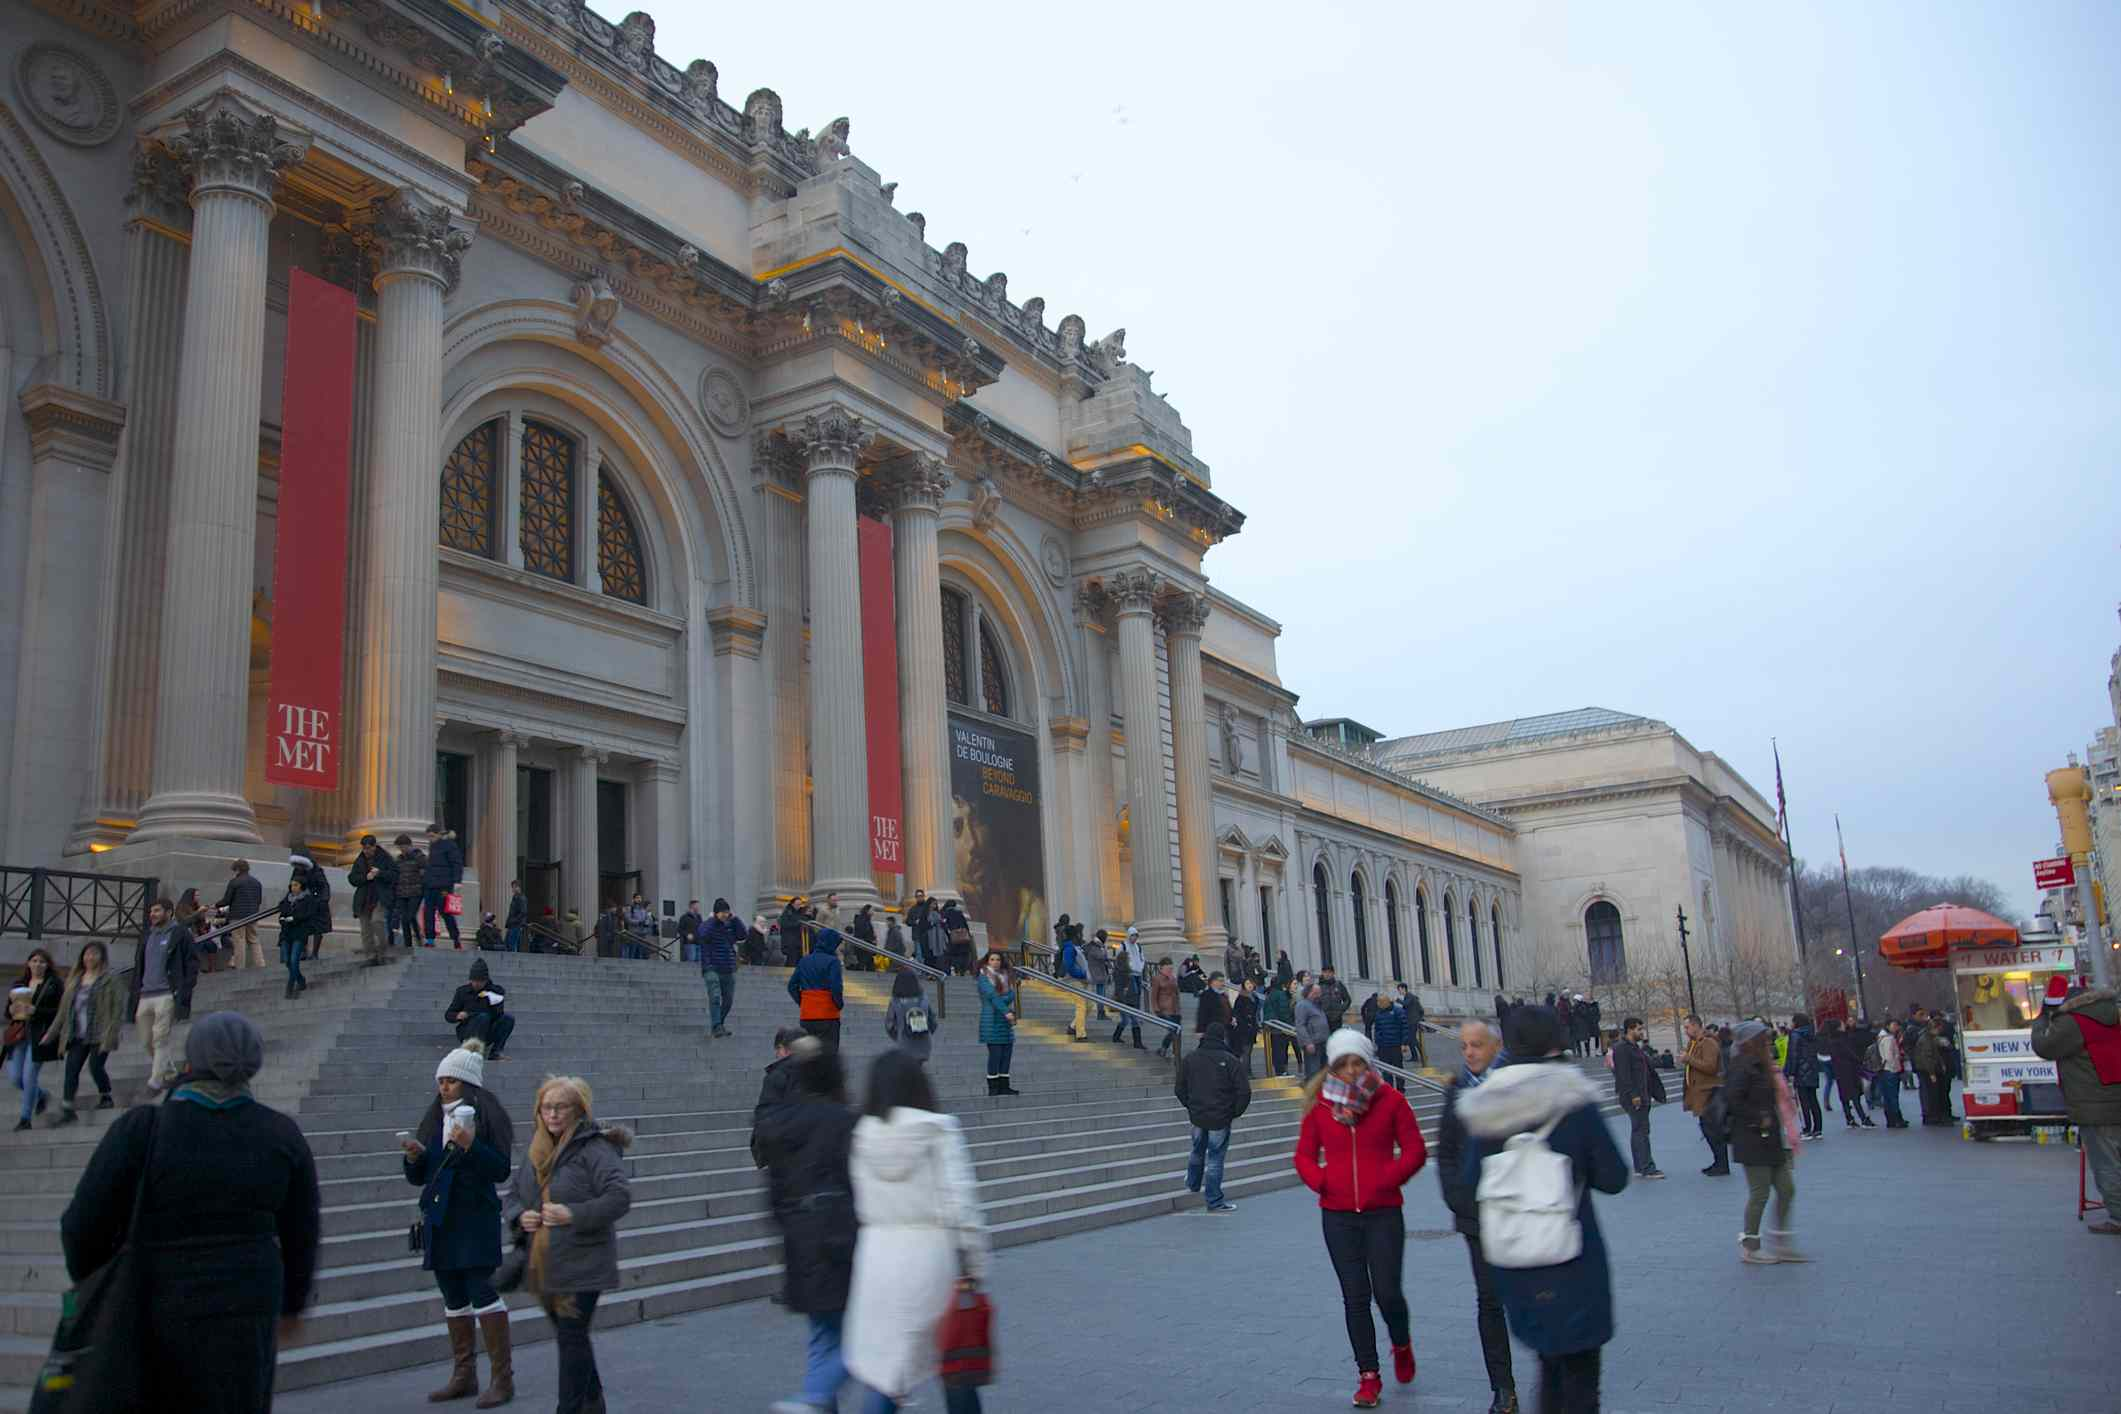 Visit NYC Museums for Free With Bank of America